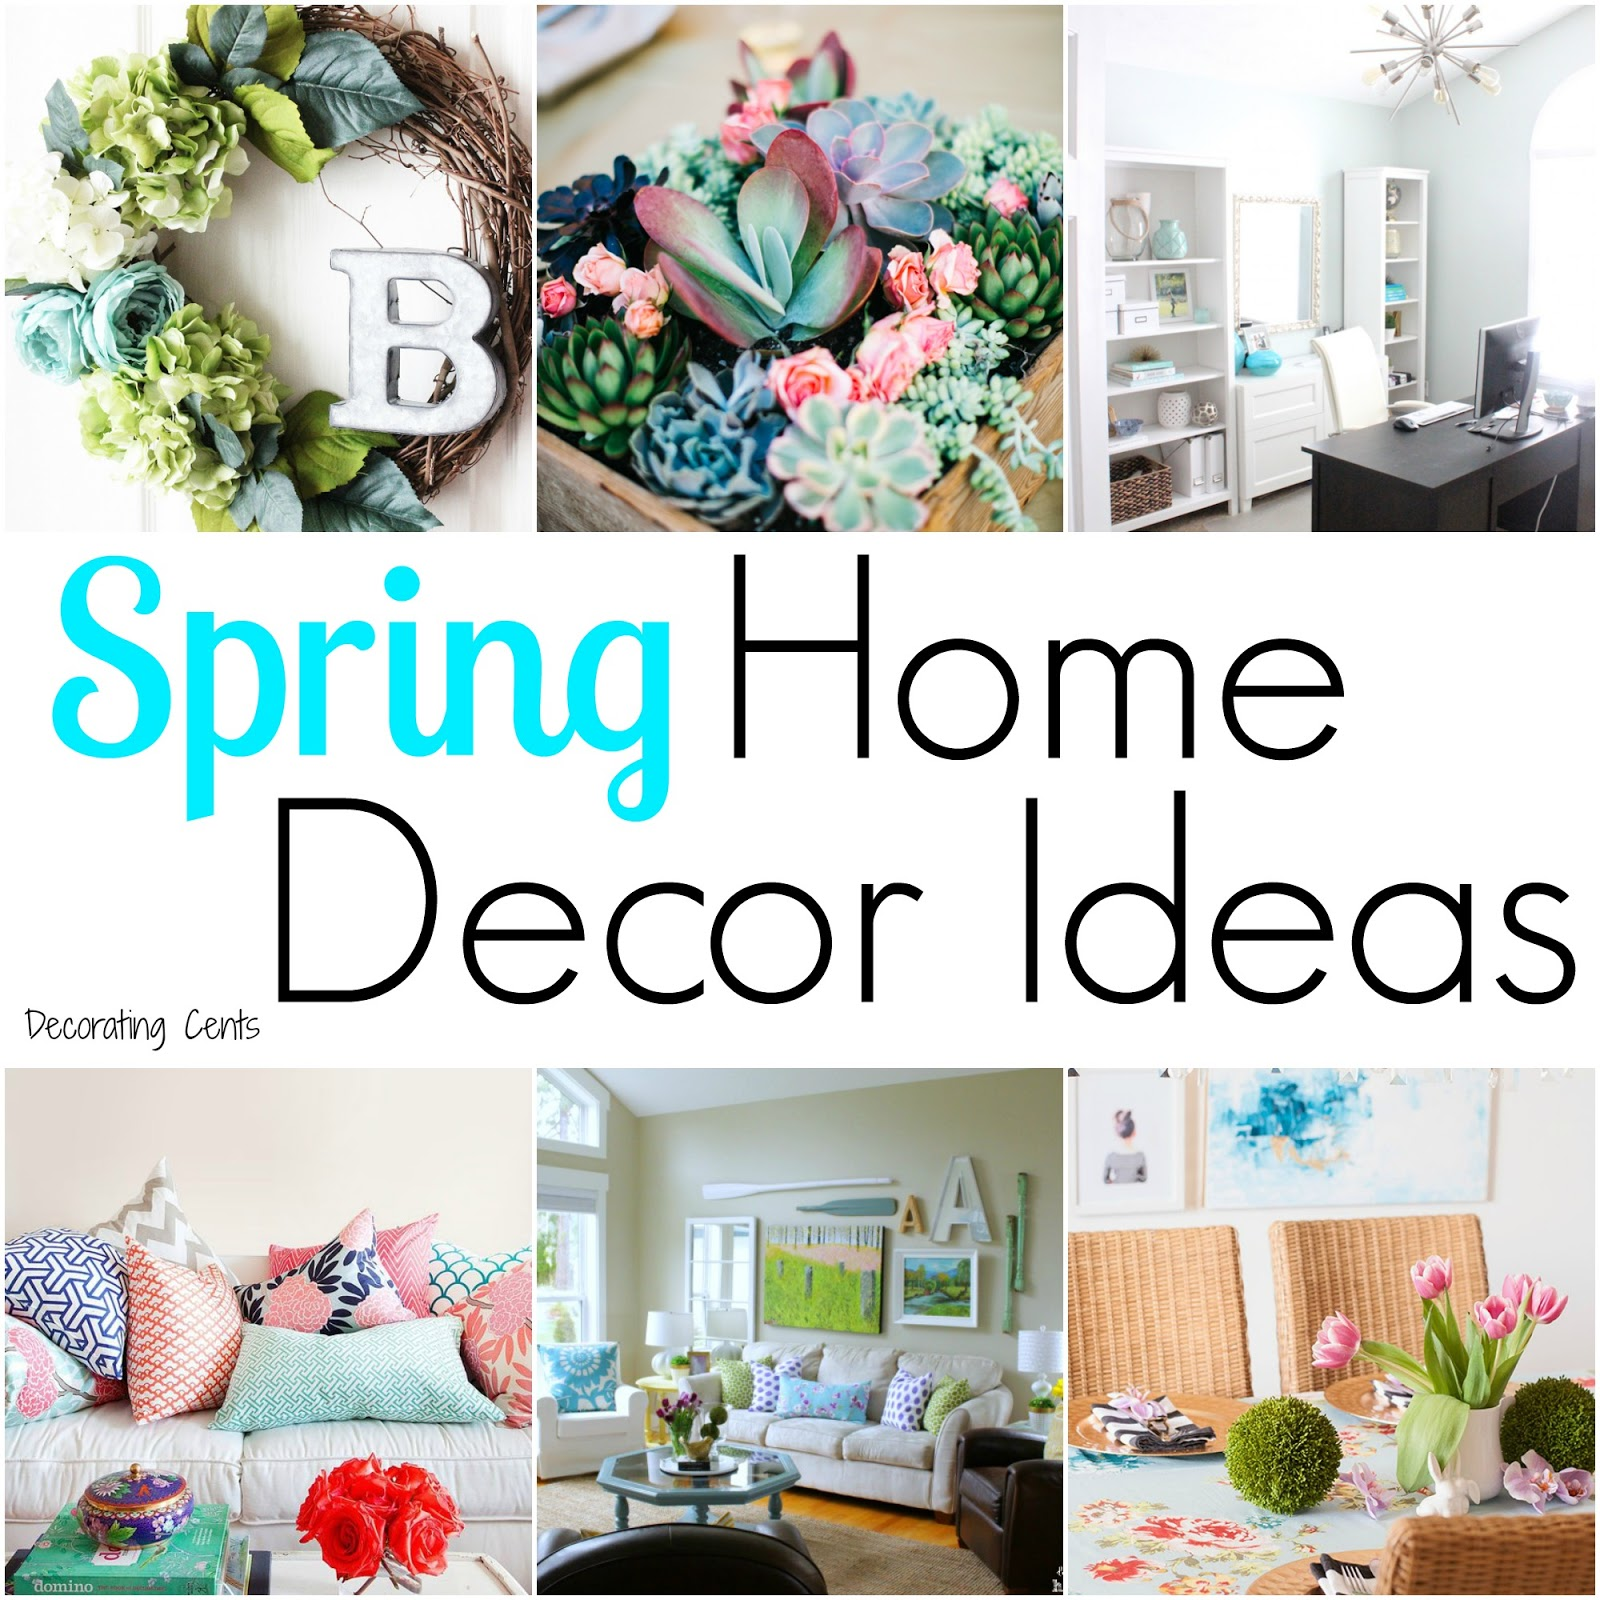 Decorating cents spring home decor ideas - Home decor texas ideas ...